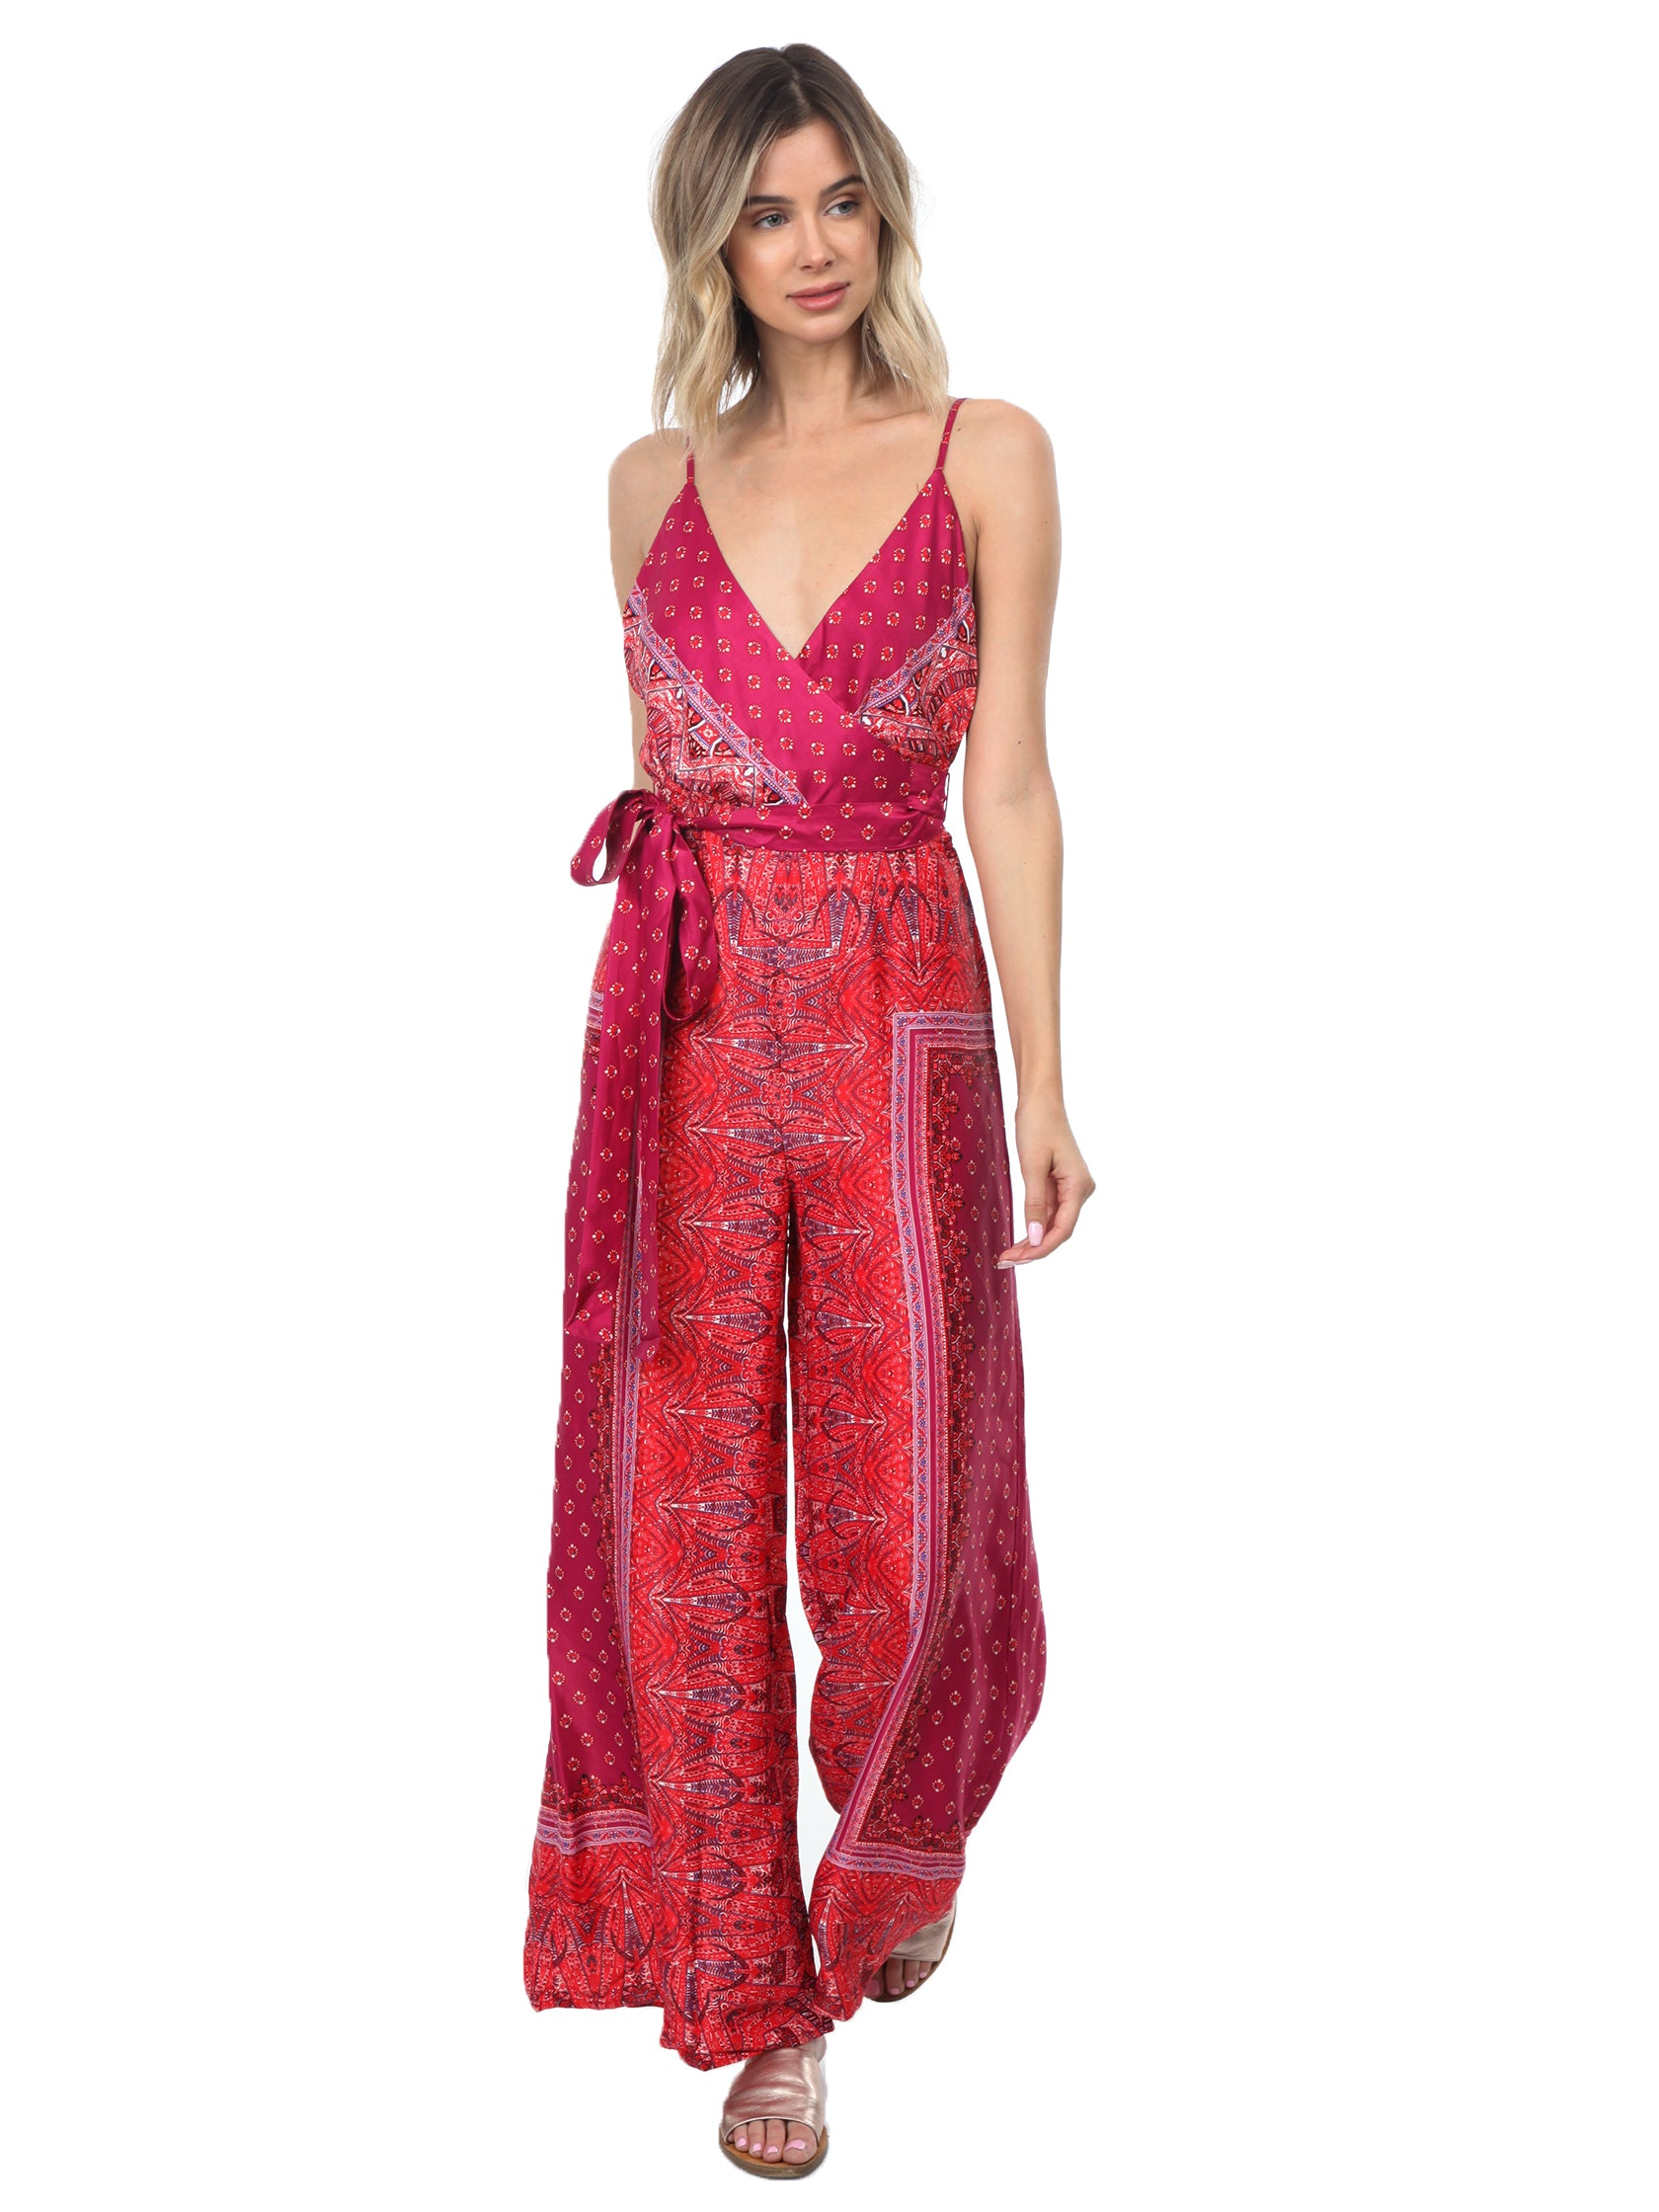 Girl outfit in a jumpsuit rental from Free People called Cabbage Rose Jumpsuit